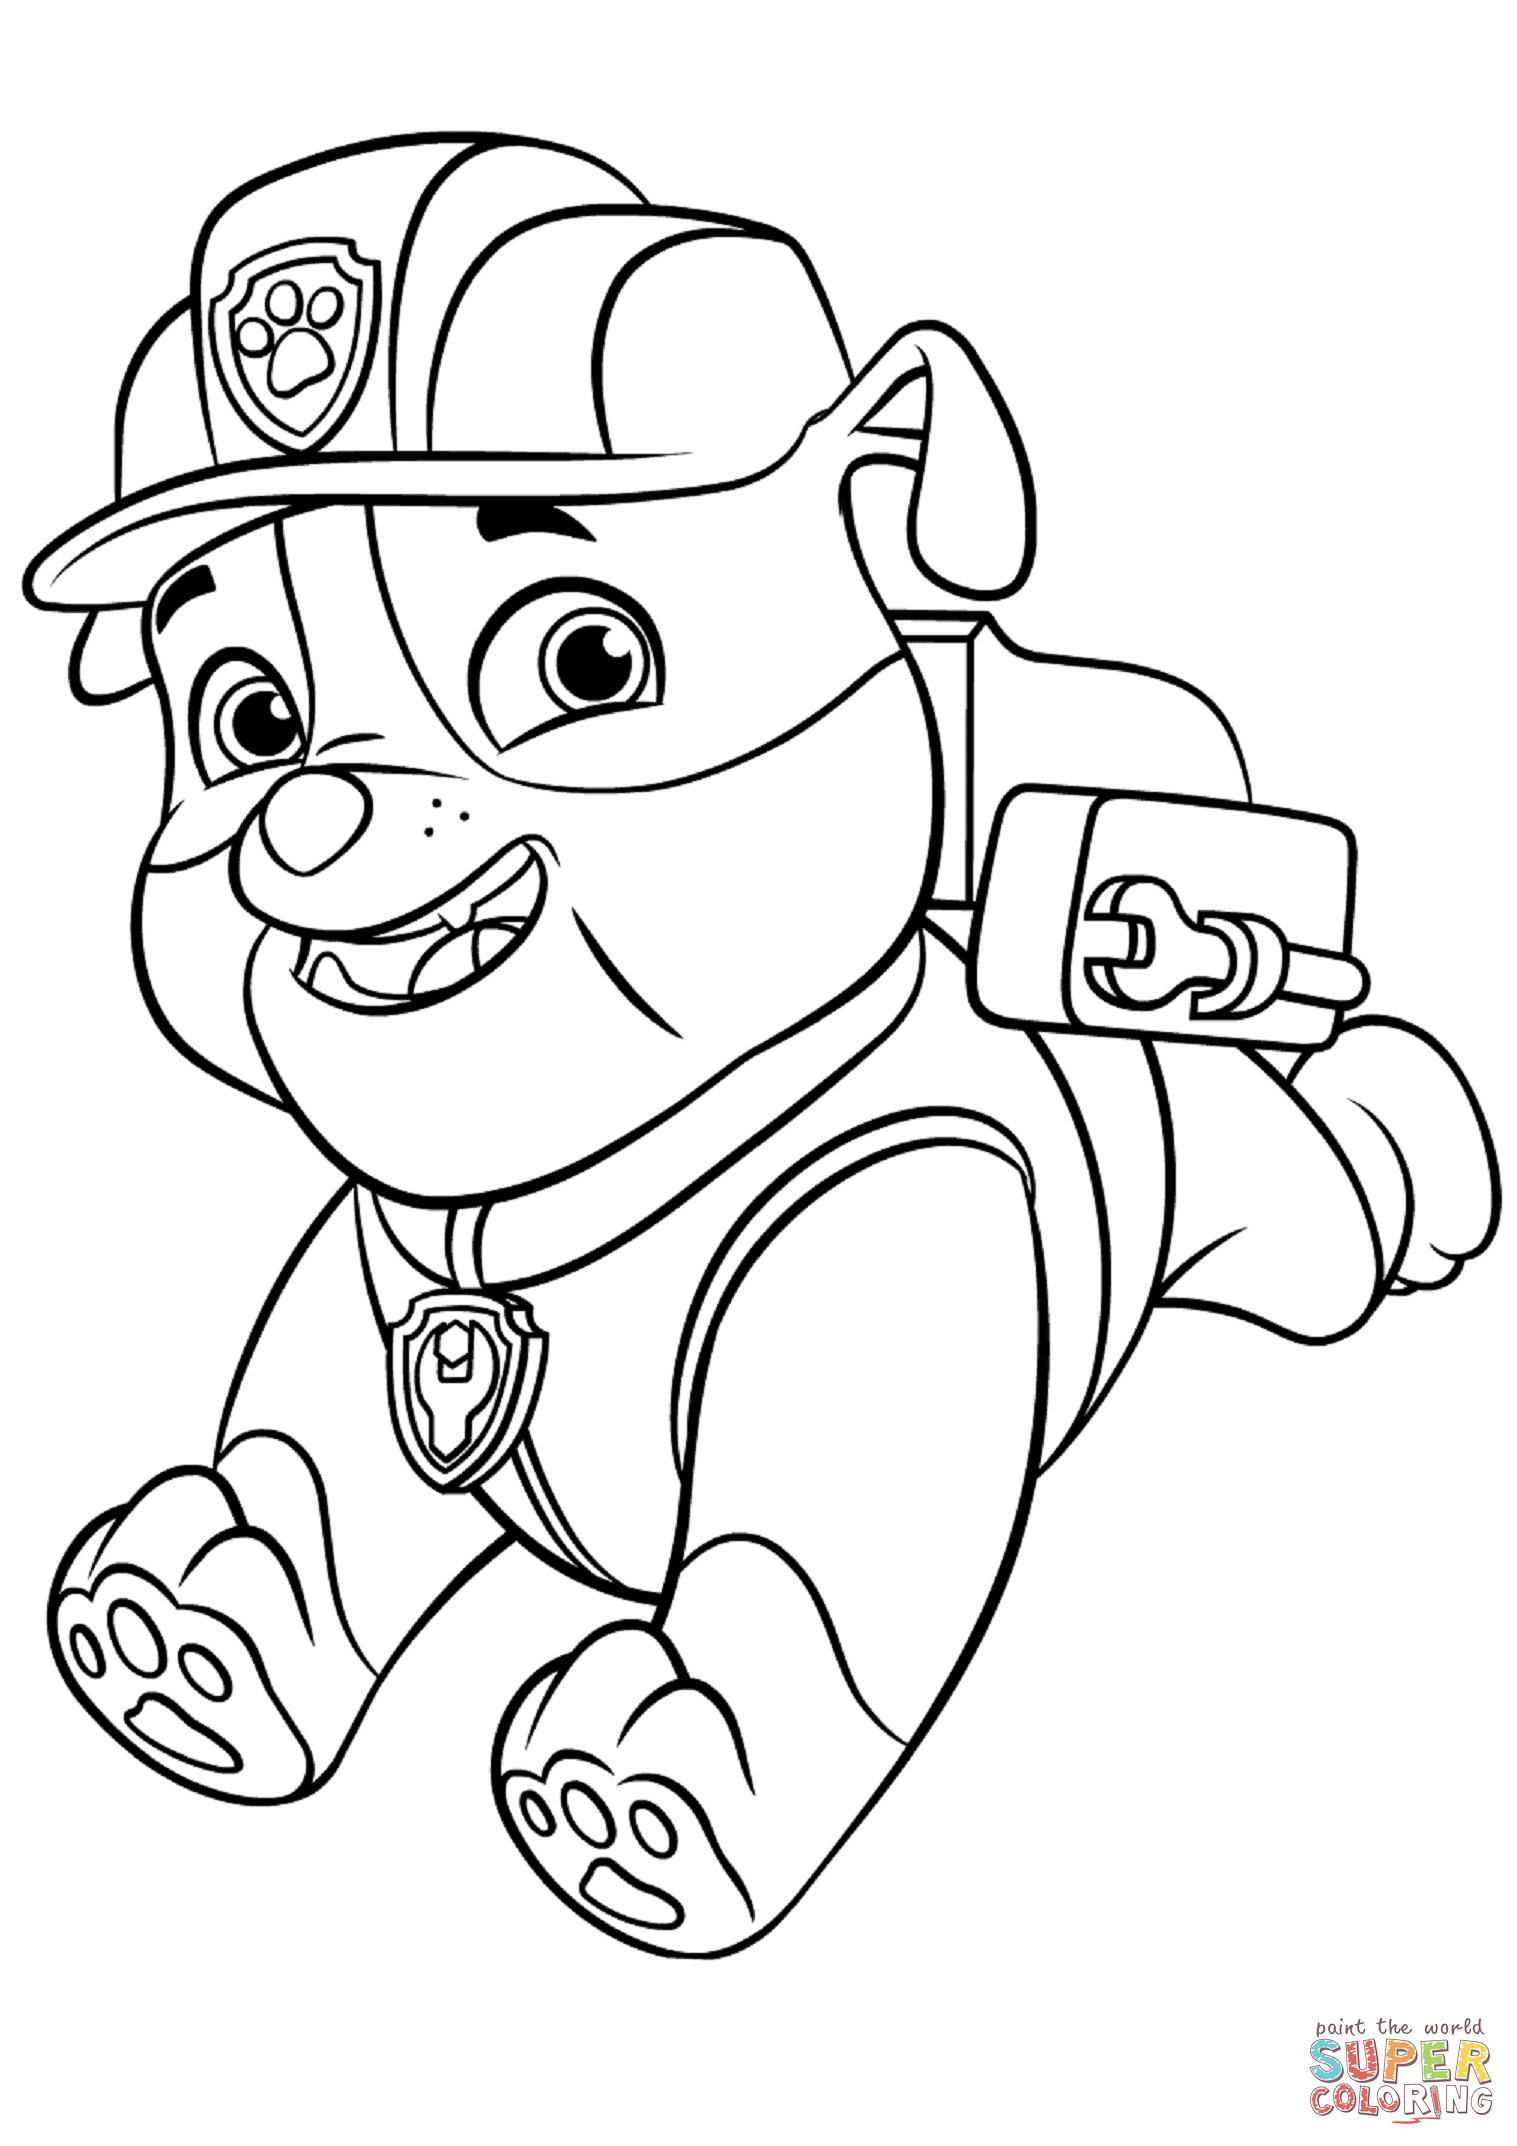 paw patrol coloring outline paw patrol marshall with water cannon coloring page free coloring paw patrol outline